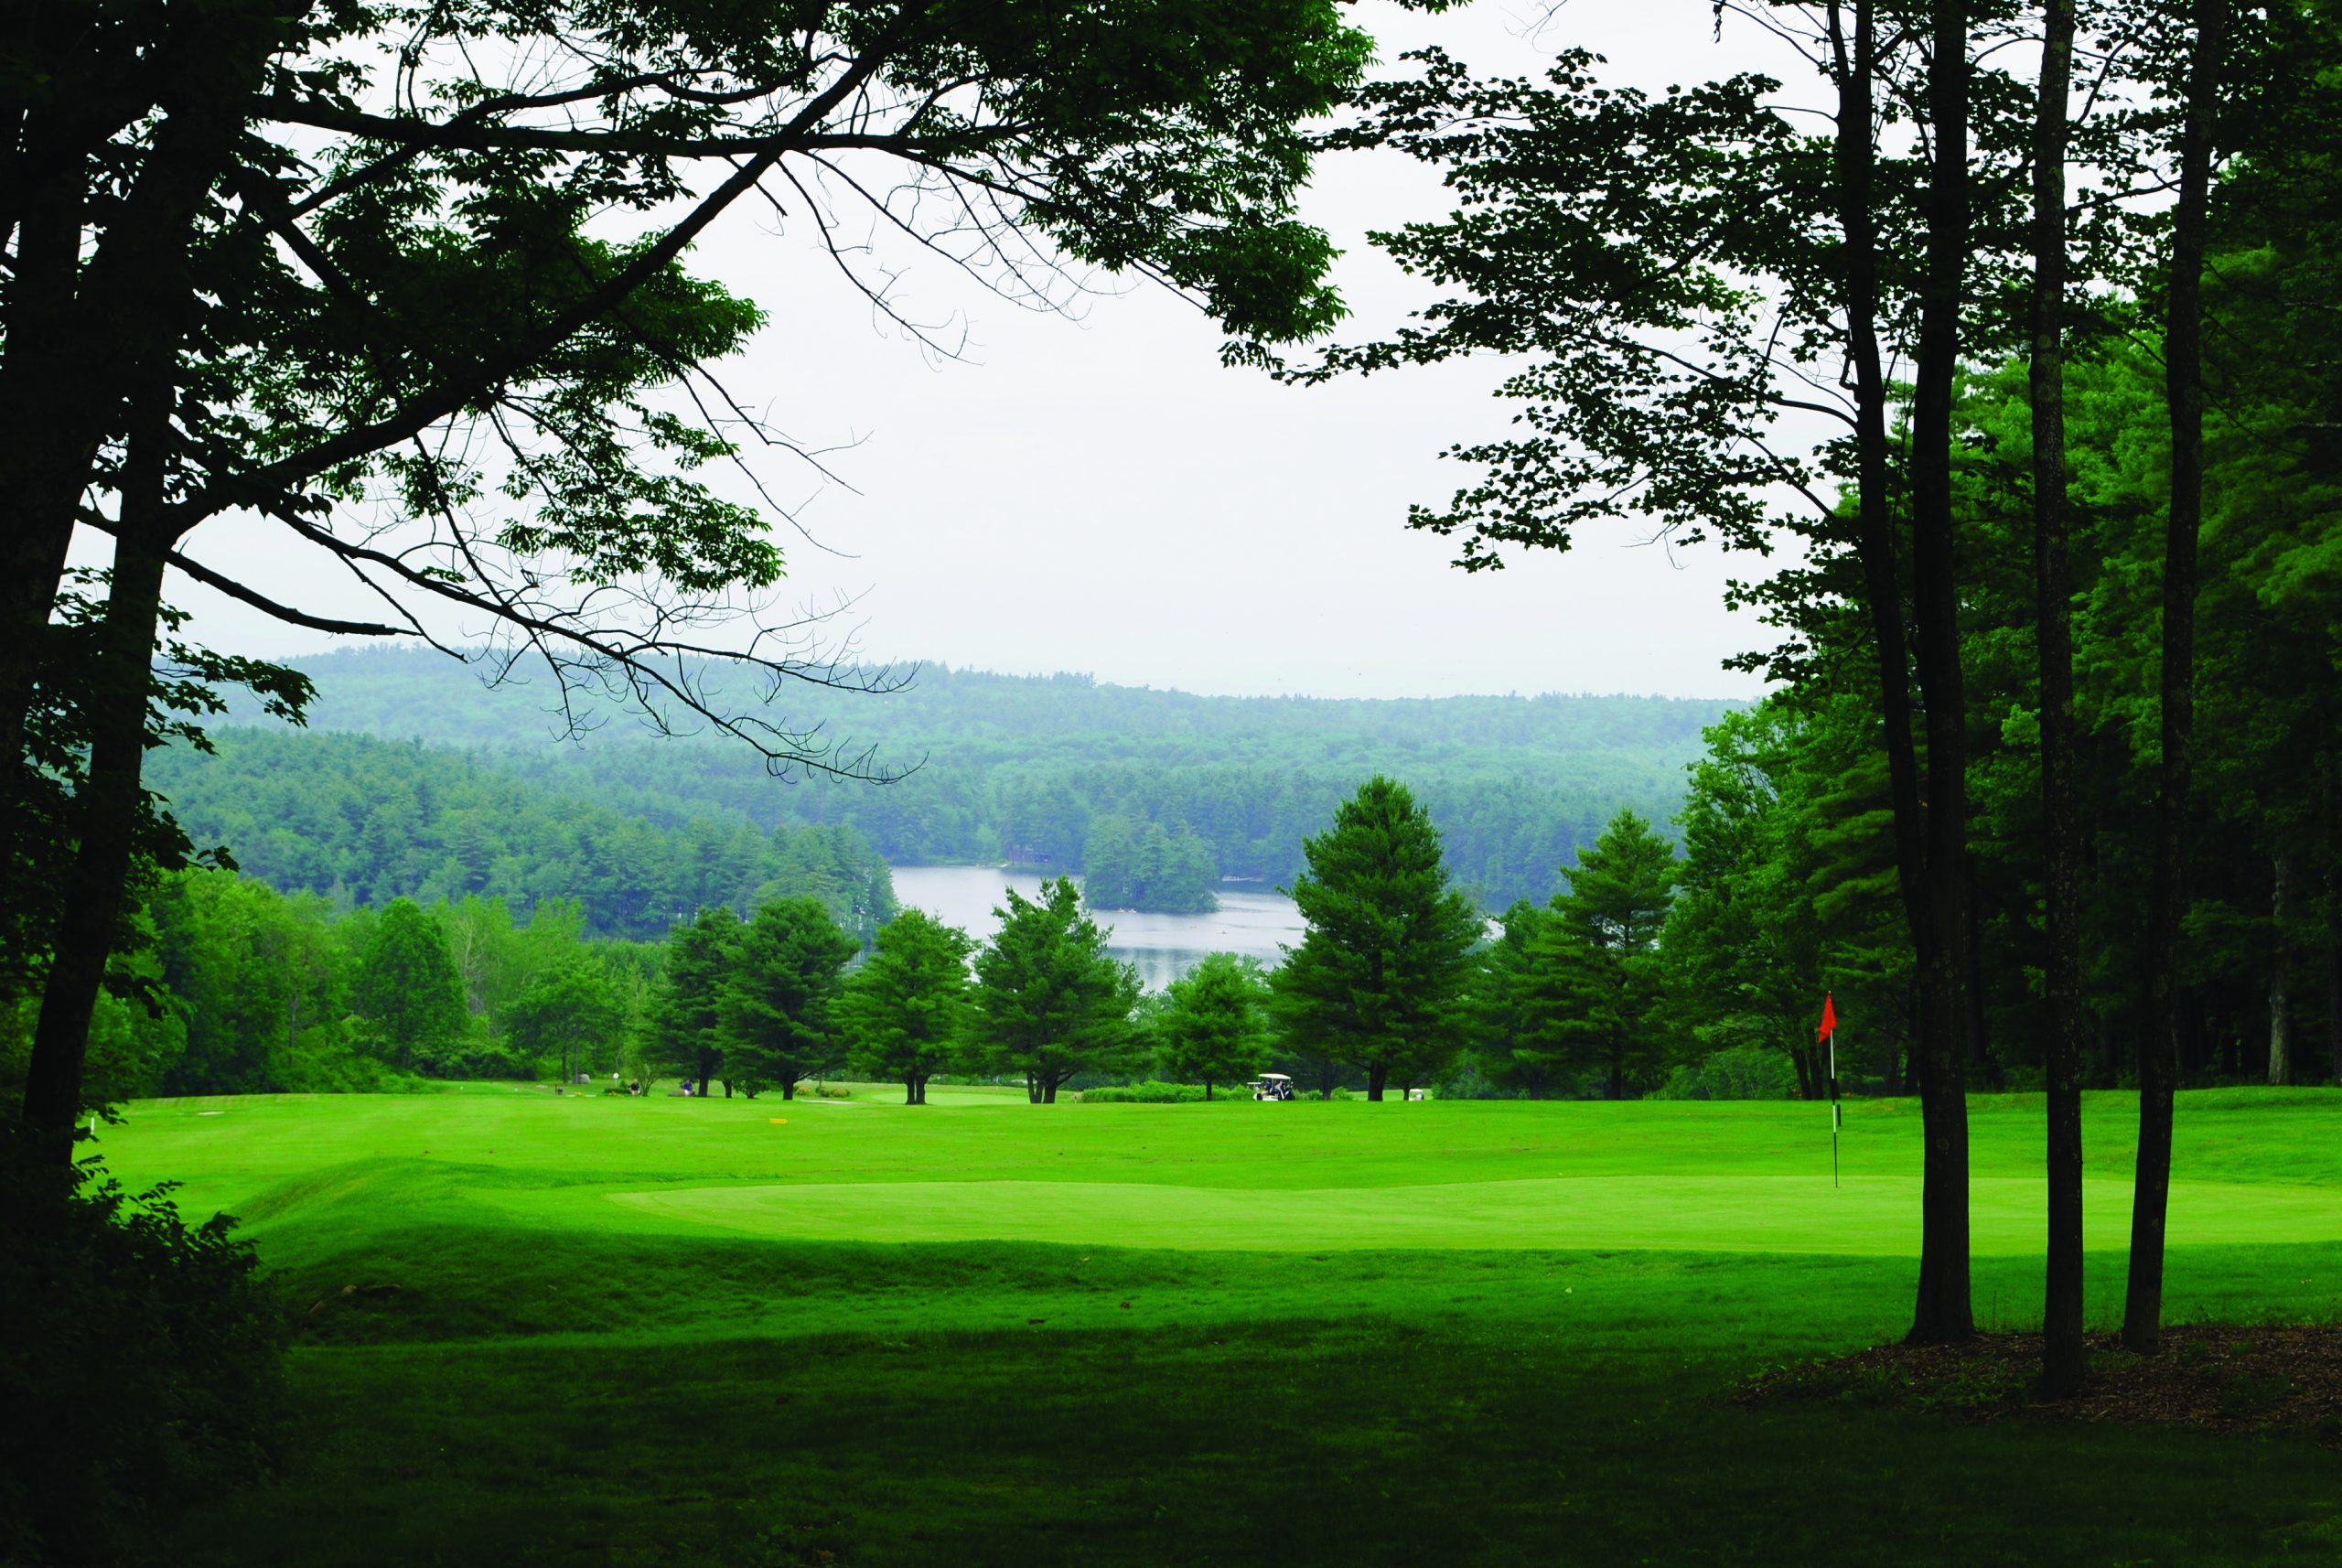 Golf Course Covid Restrictions